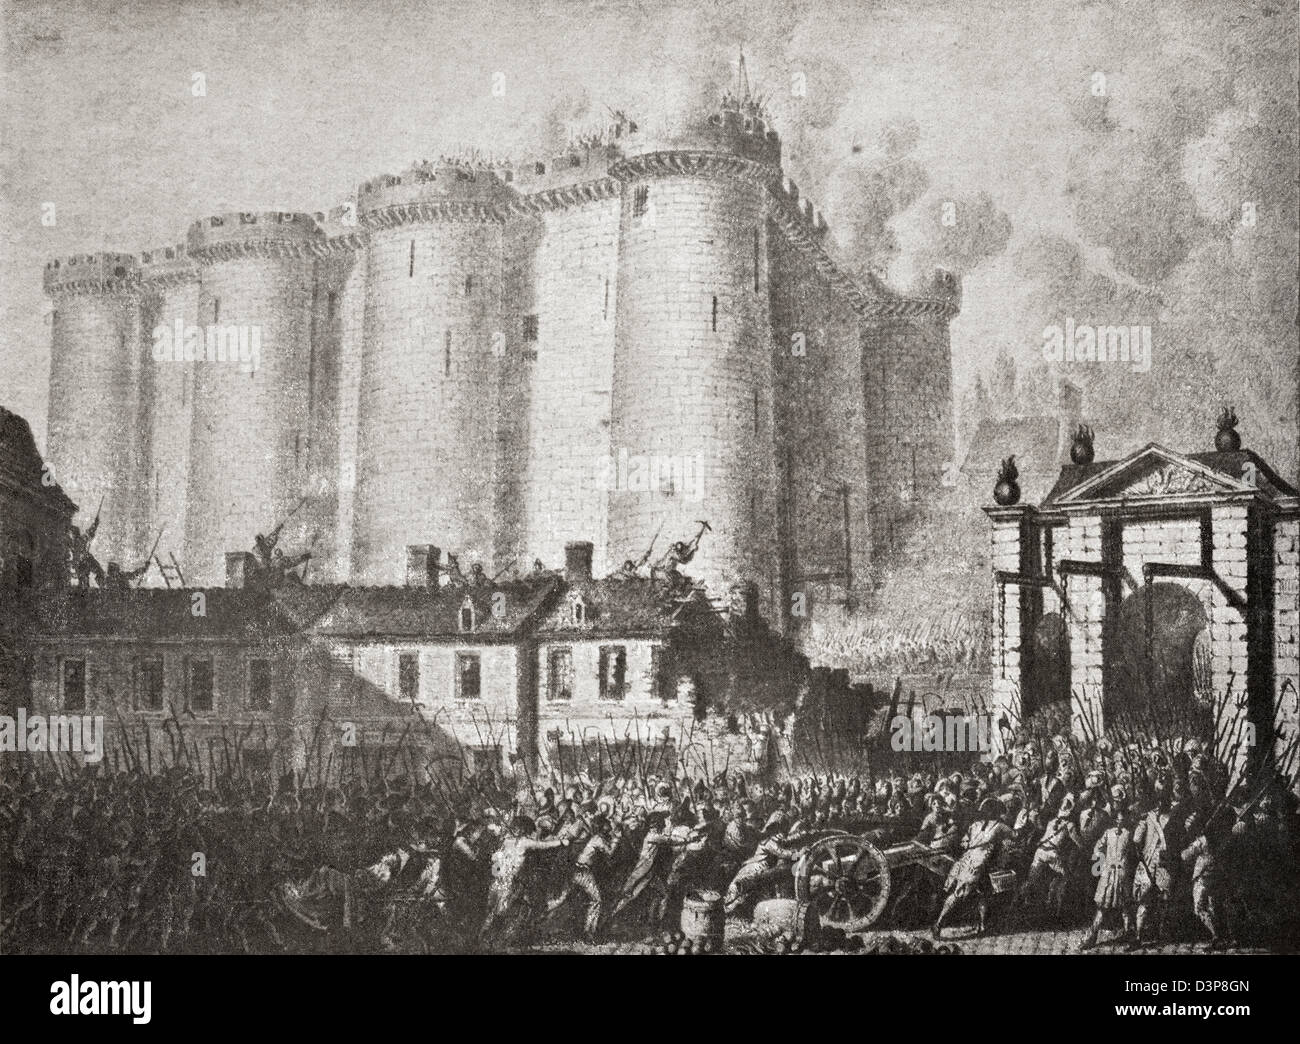 Storming Of The Bastille Stock Photos & Storming Of The Bastille ...